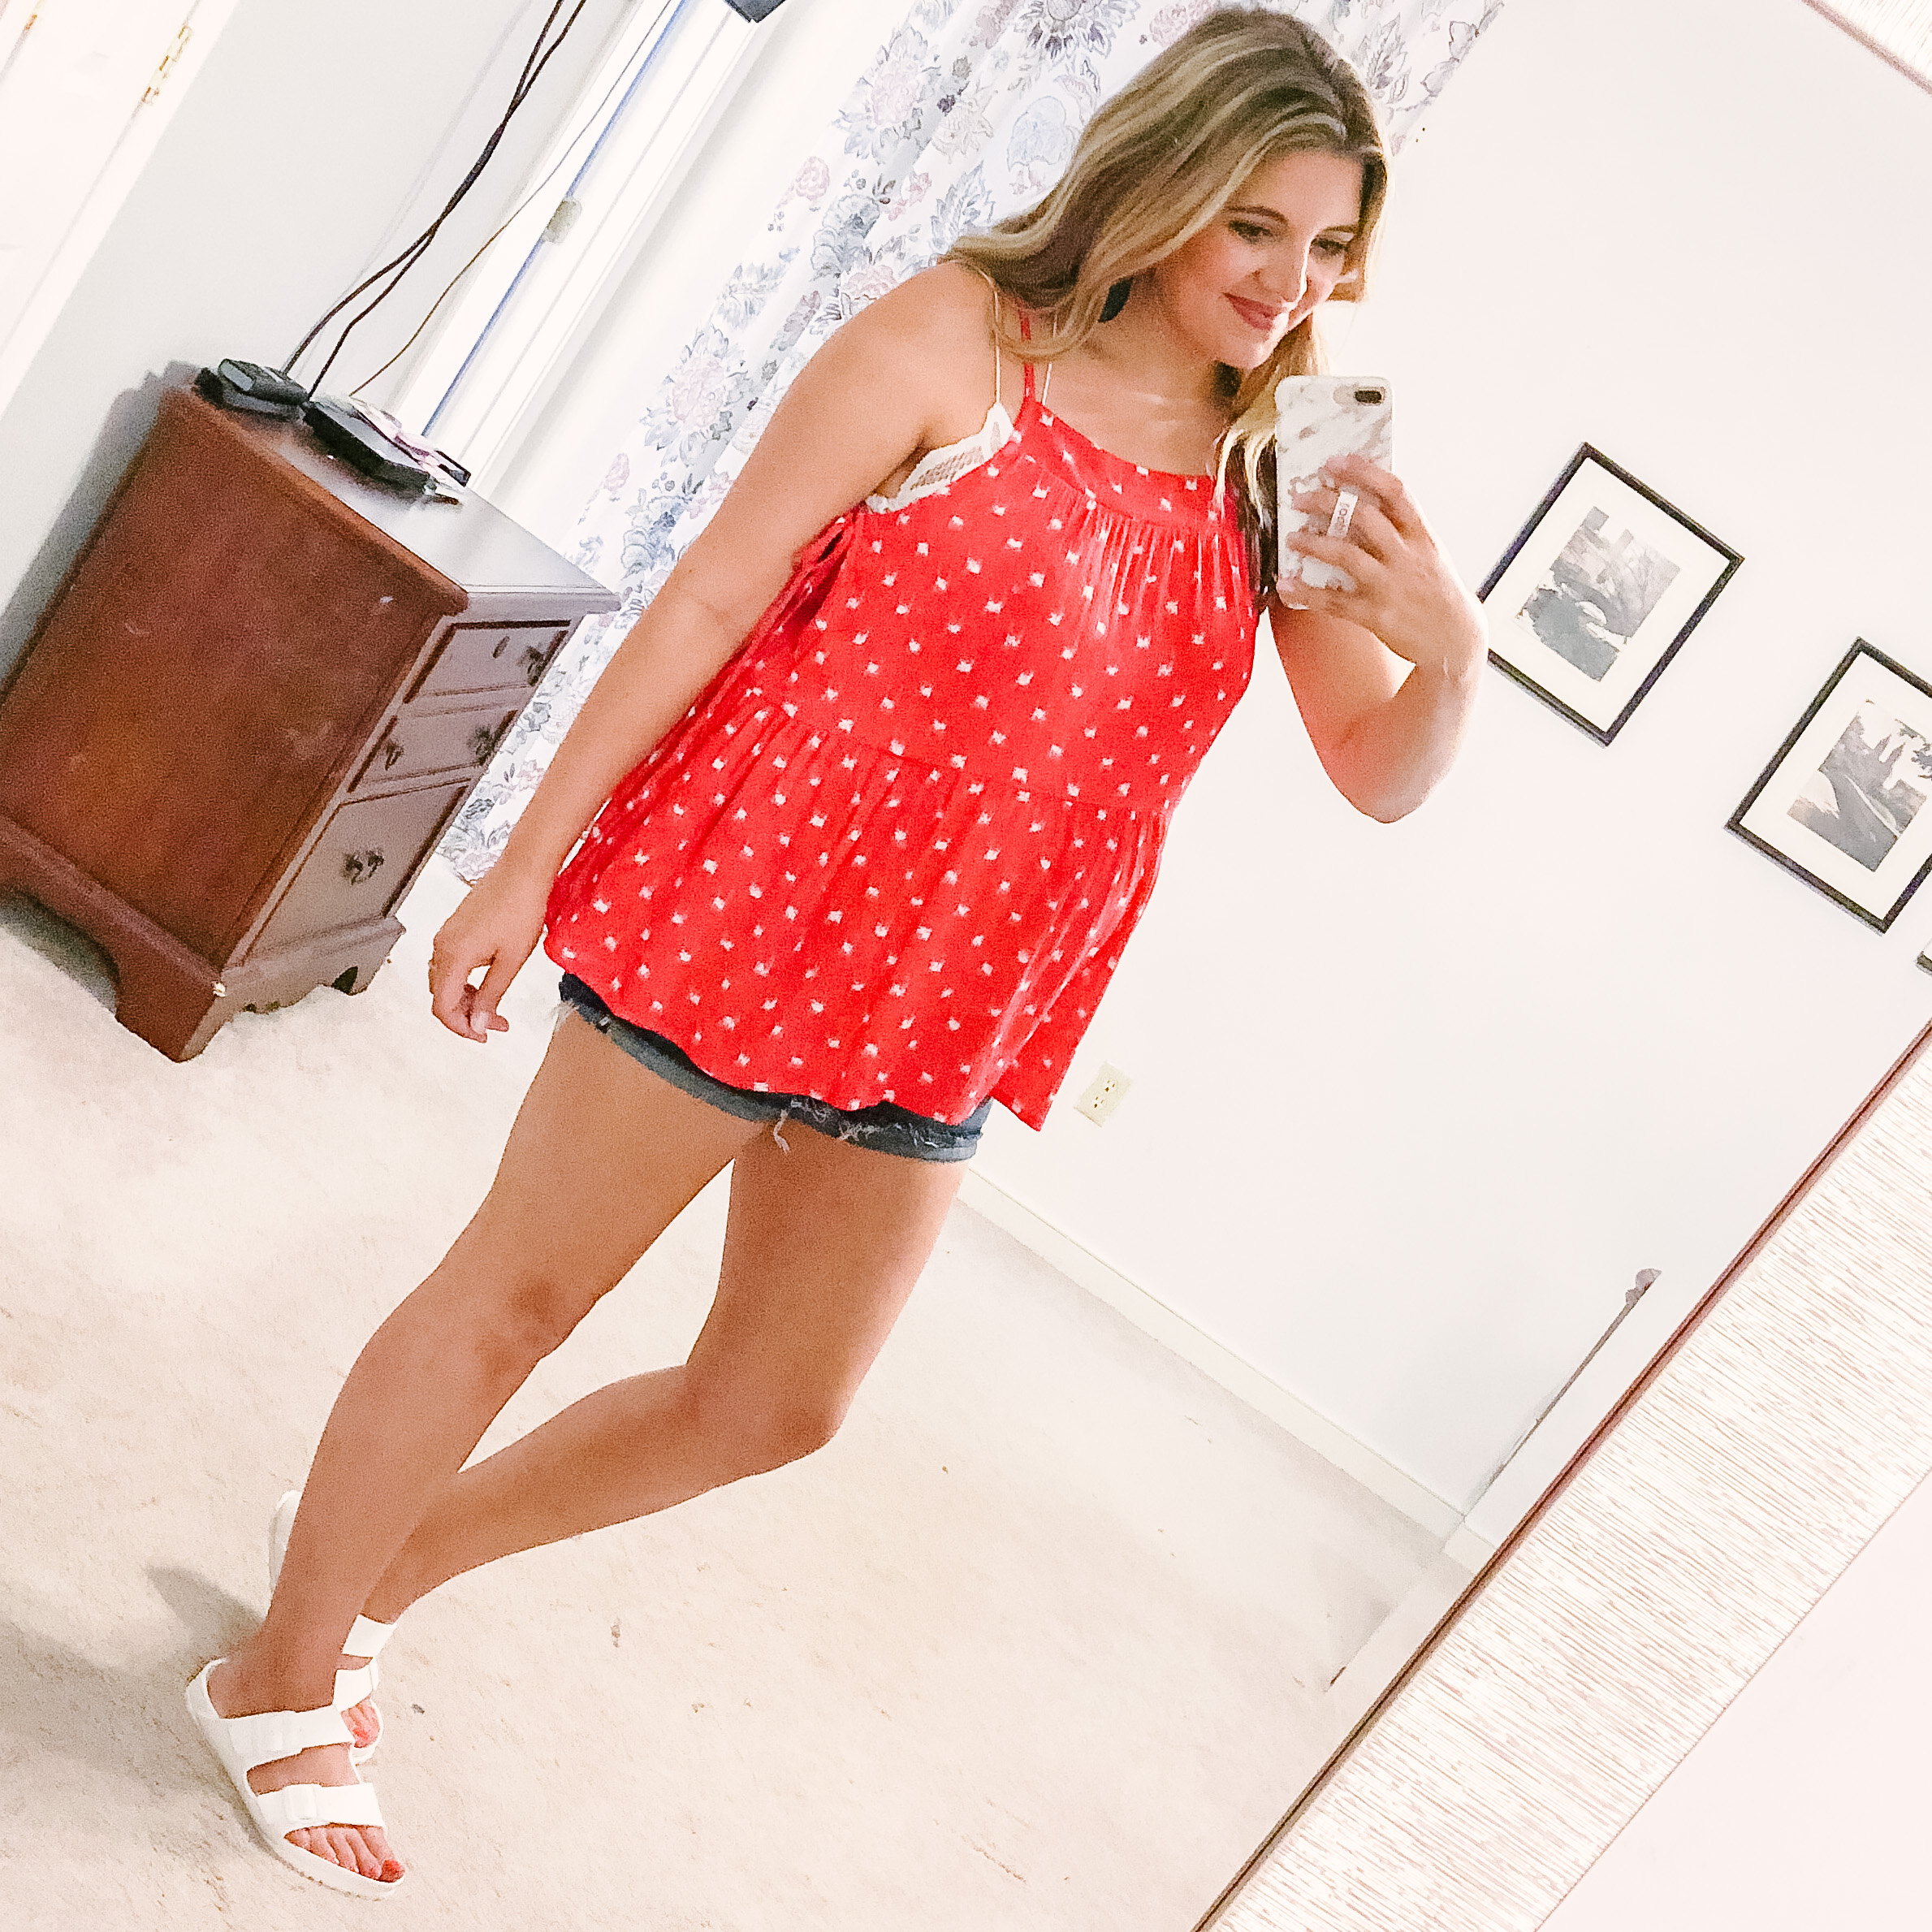 cute 4th of july outfit ideas - this red and white tank is only $13! | patriotic outfit roundup - come see over 15 4th of july outfit ideas! bylaurenm.com